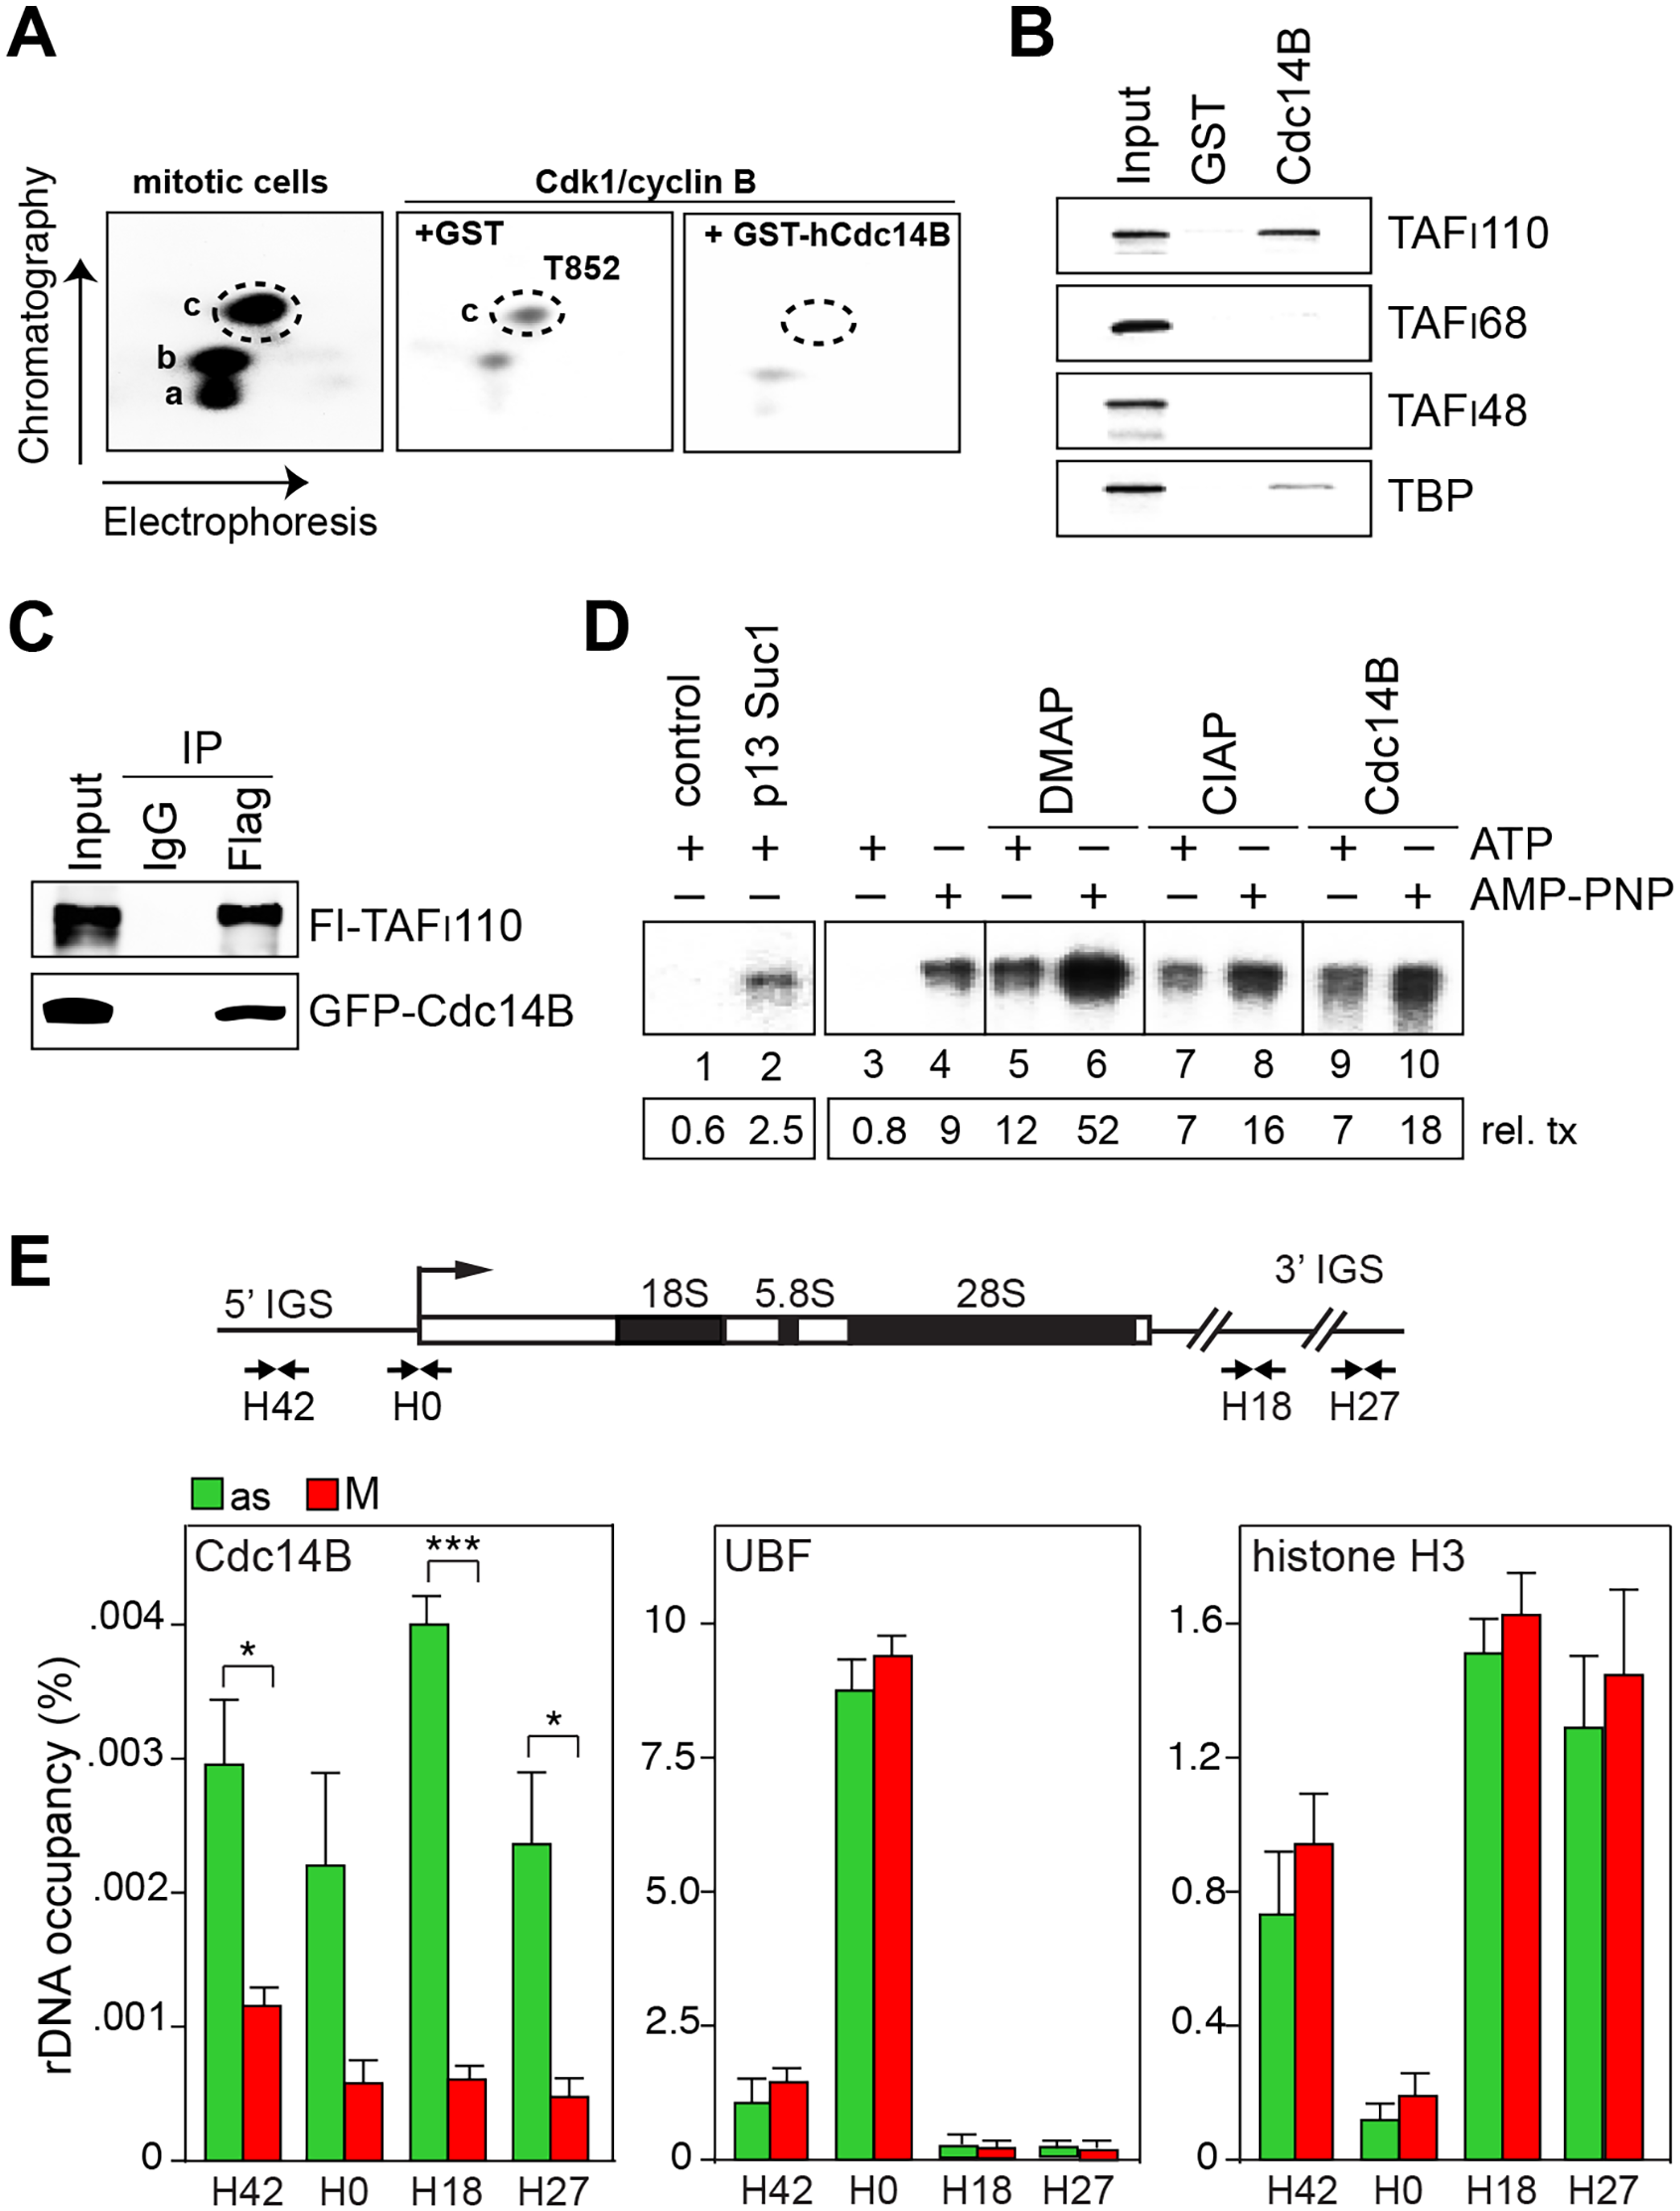 Cdc14B relieves transcriptional repression by dephosphorylating TAF<sub>I</sub>110 at threonine 852.